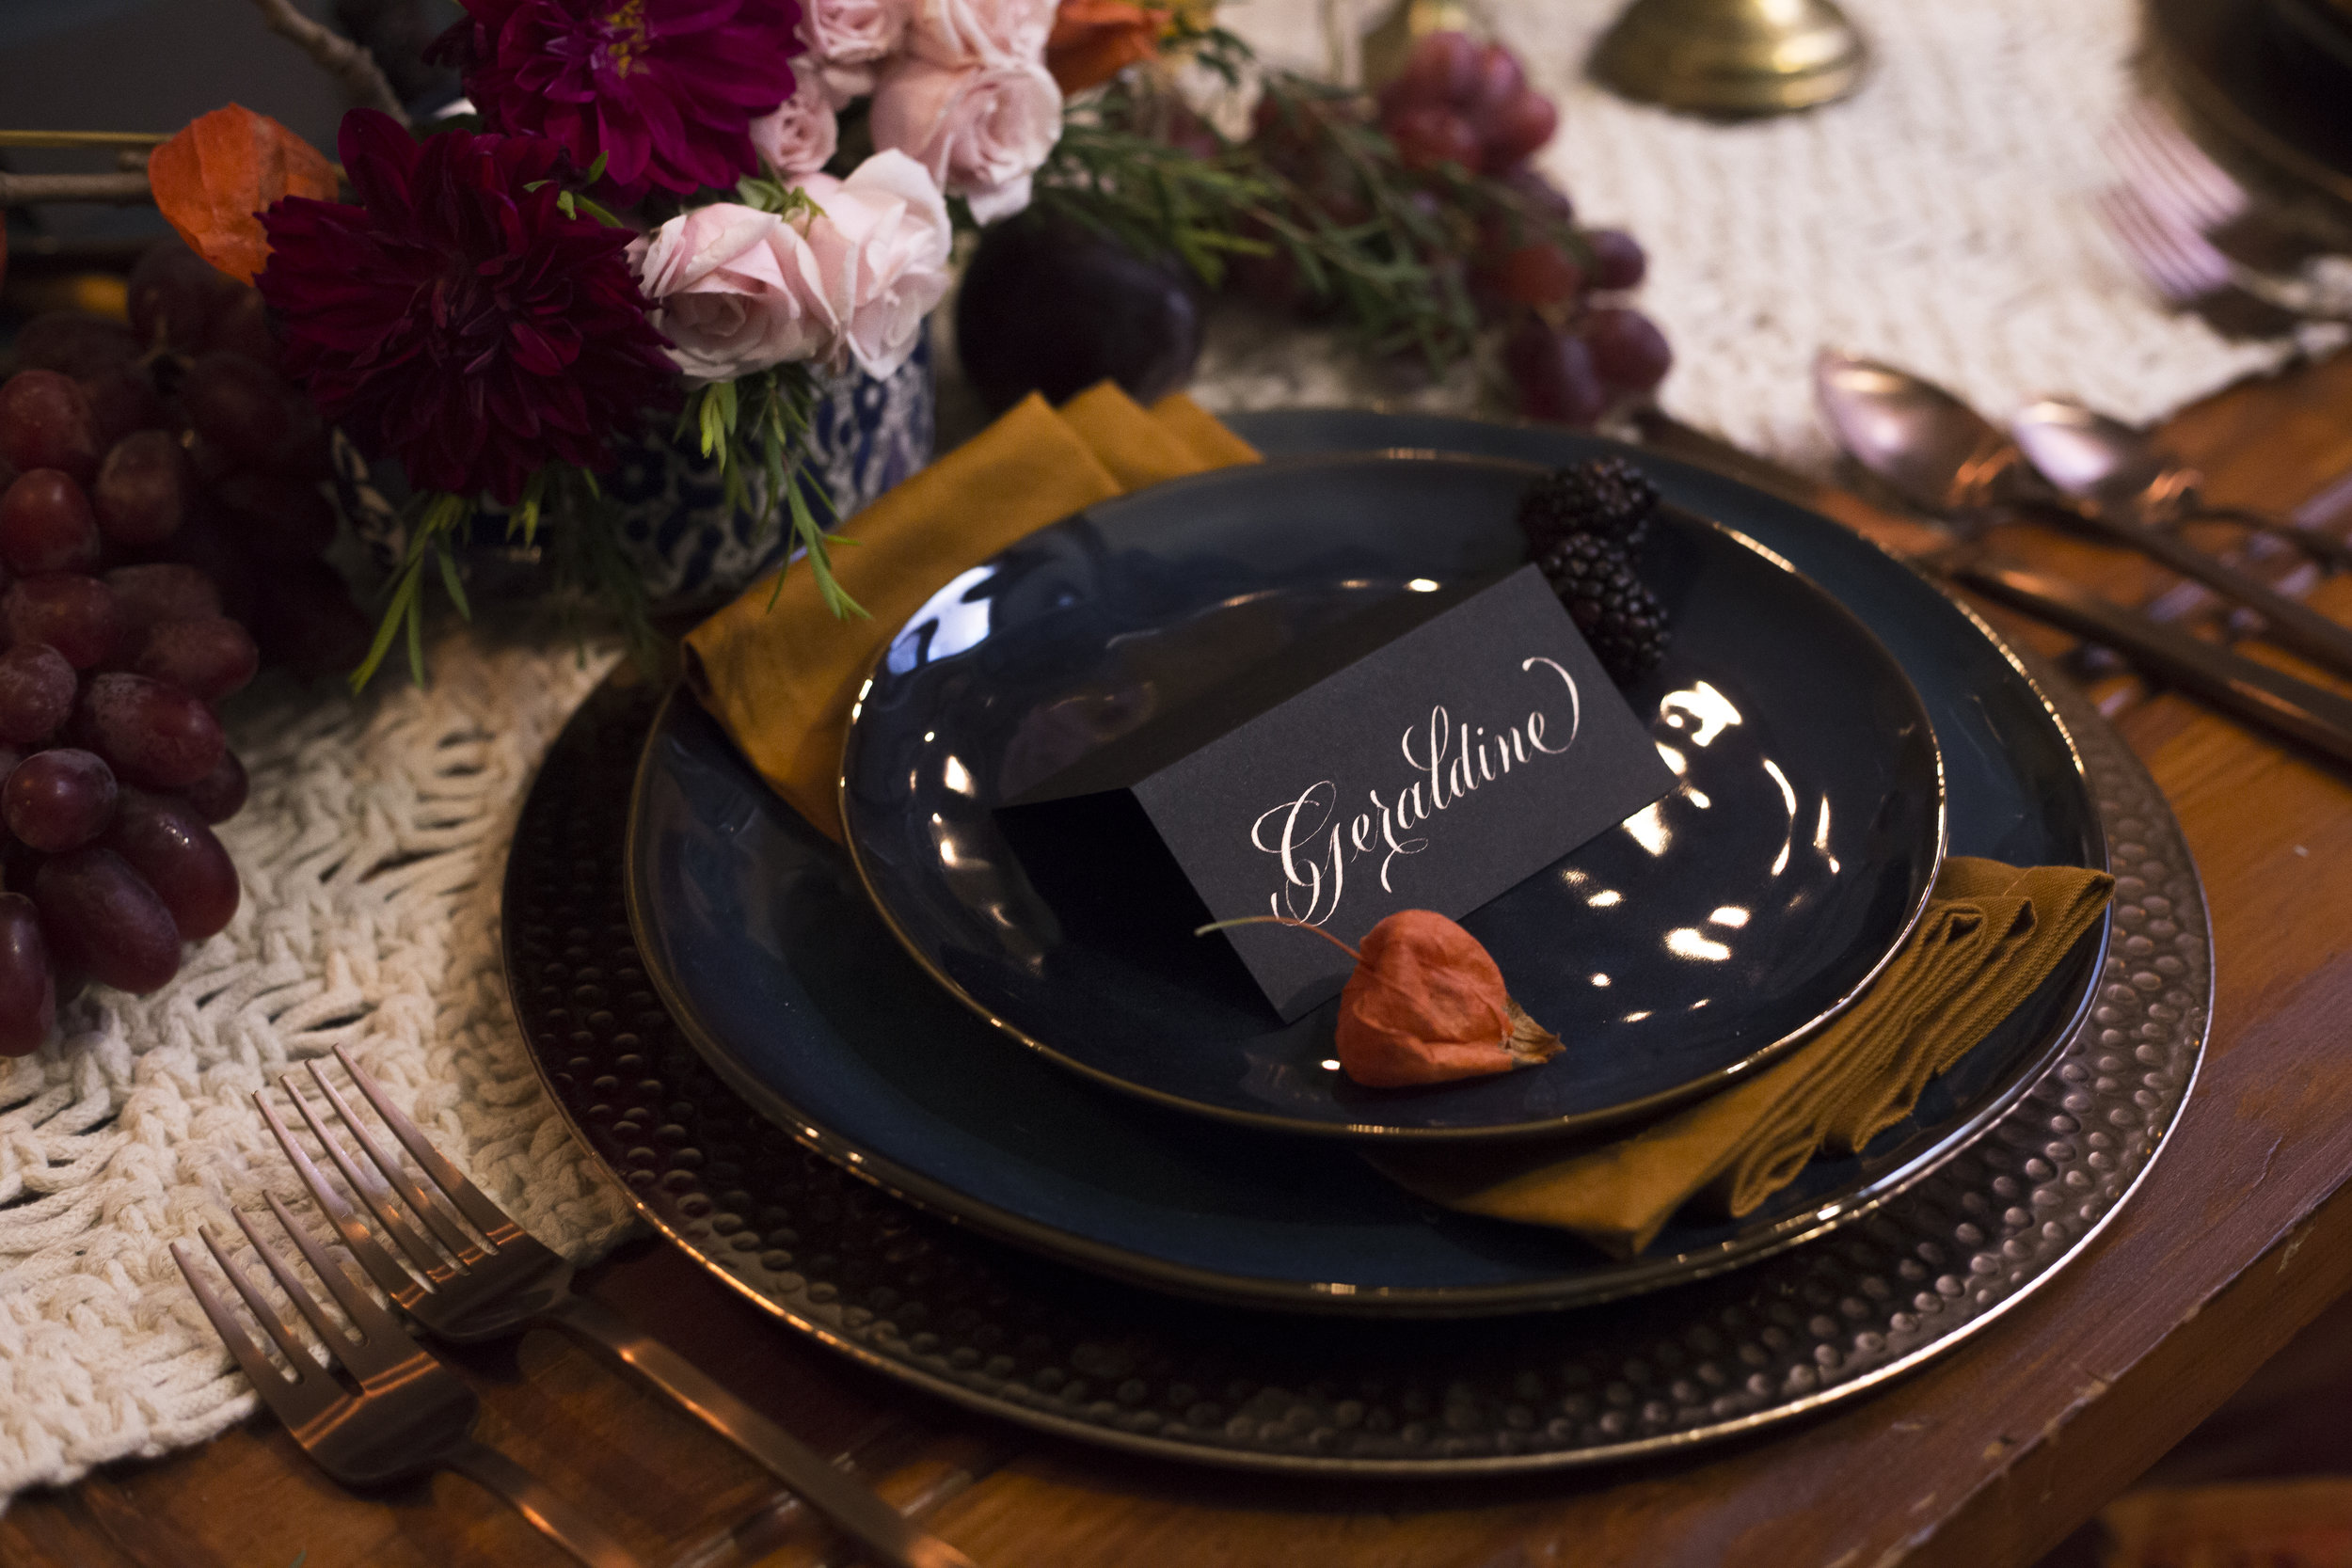 Copper script calligraphy on black place cards   by Chavelli www.chavelli.com